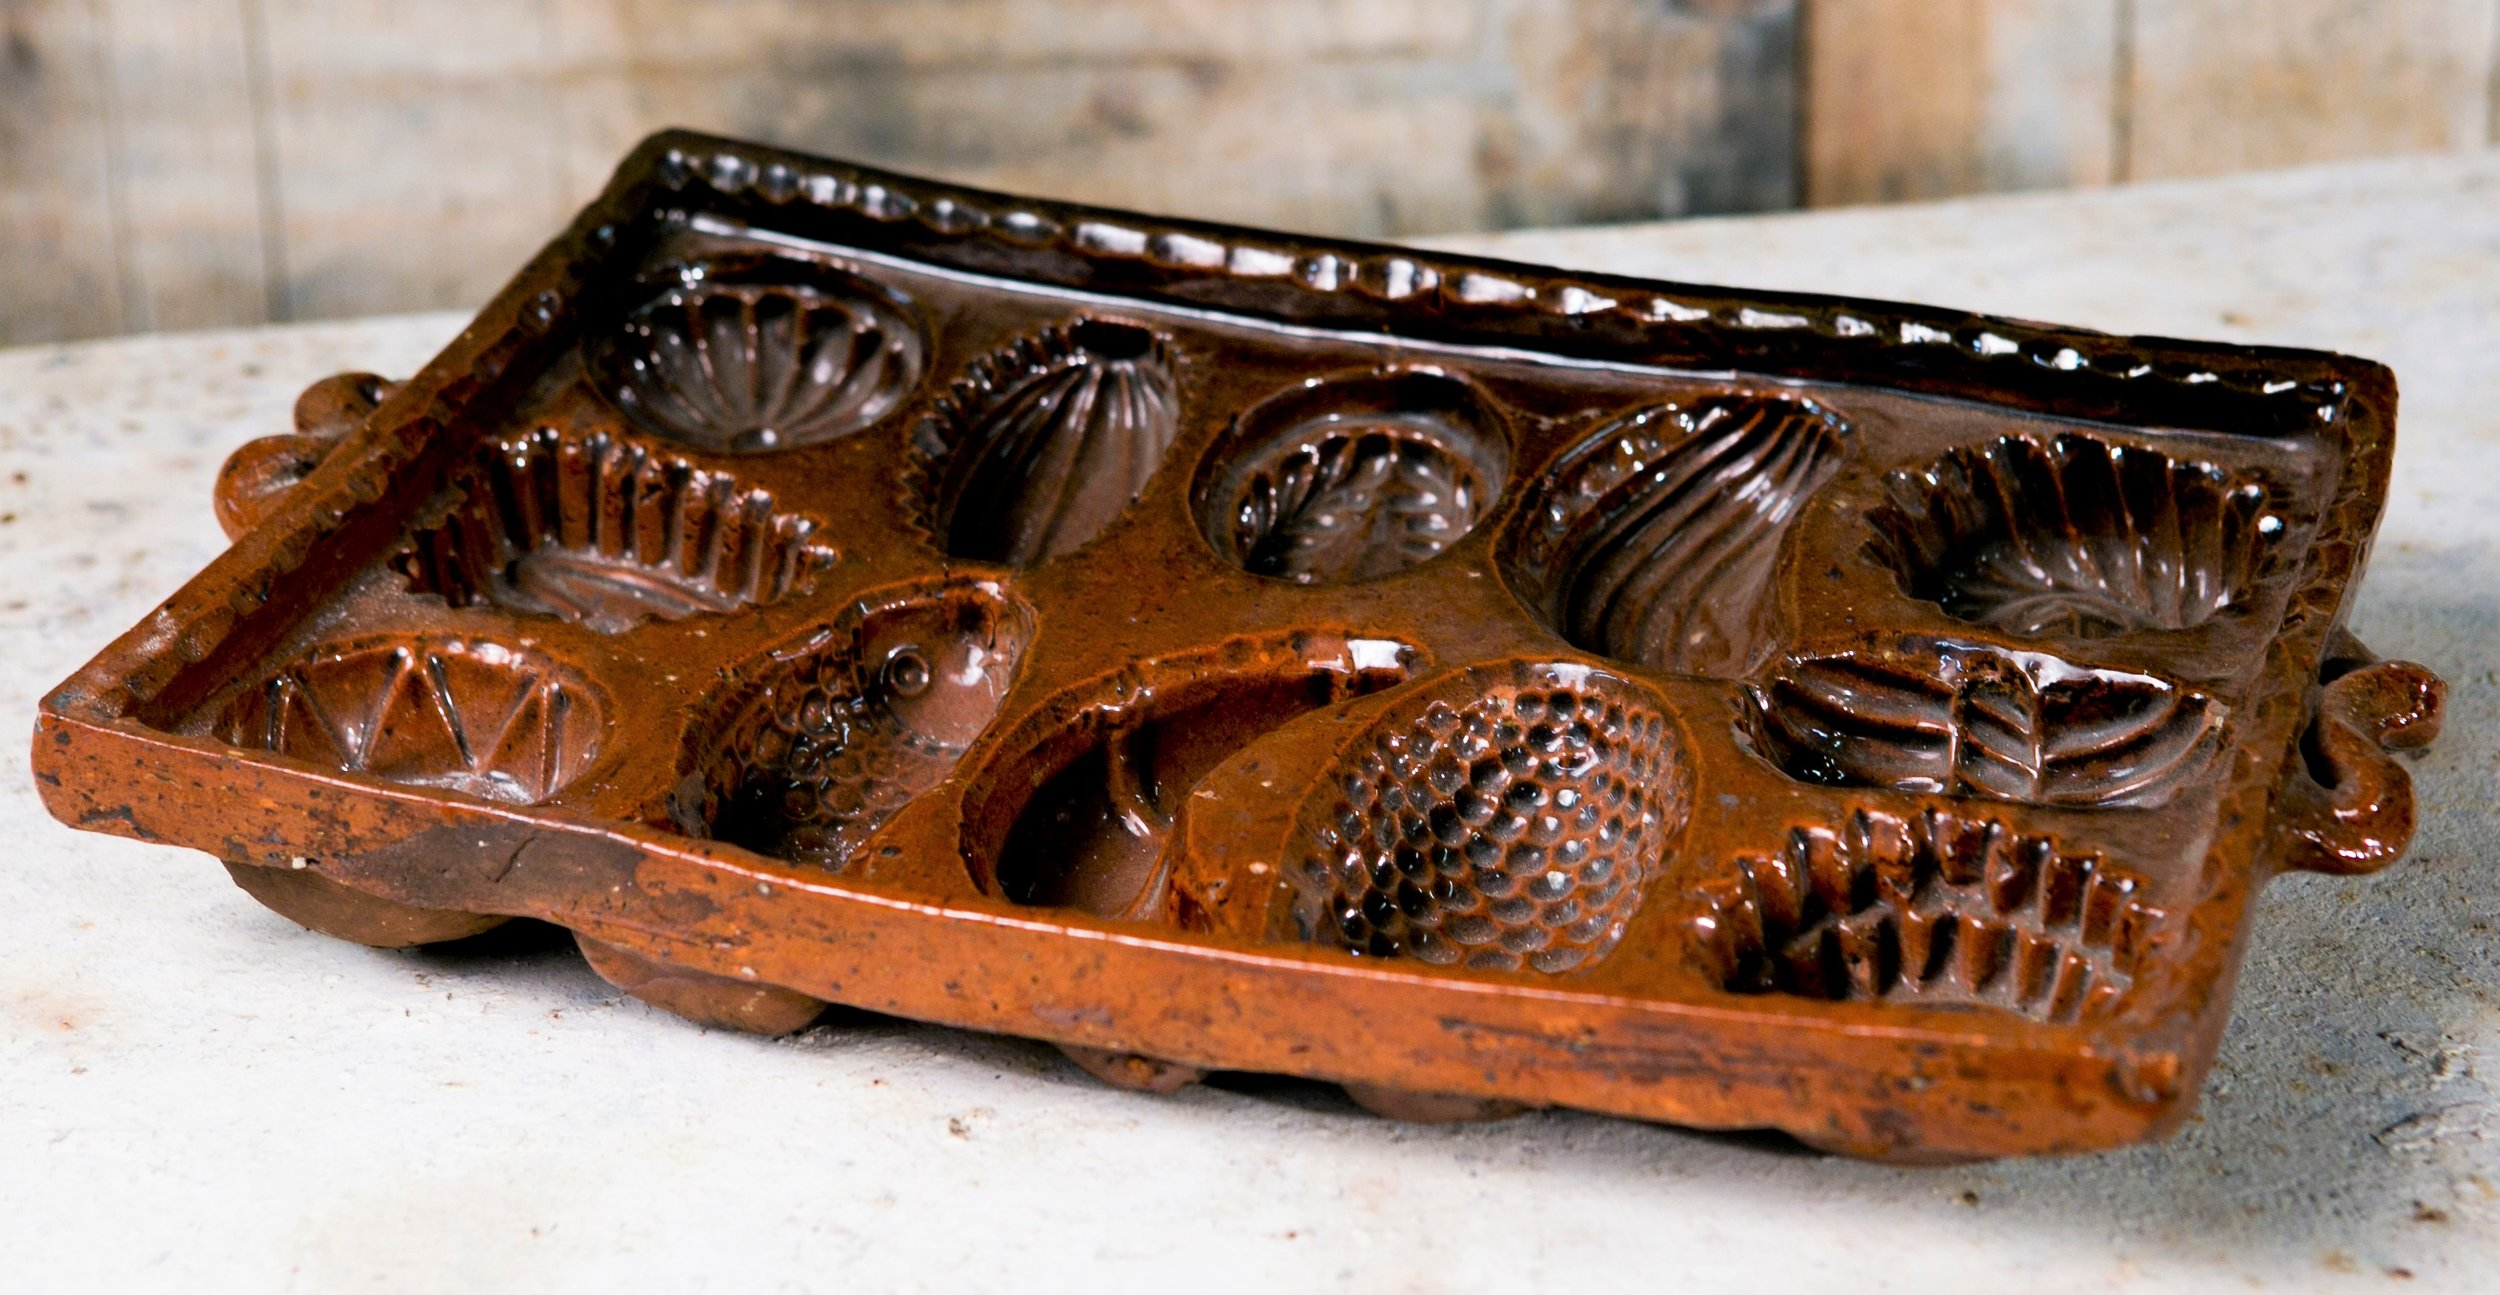 Rare Set of Five 18th Century Pottery Baking Molds